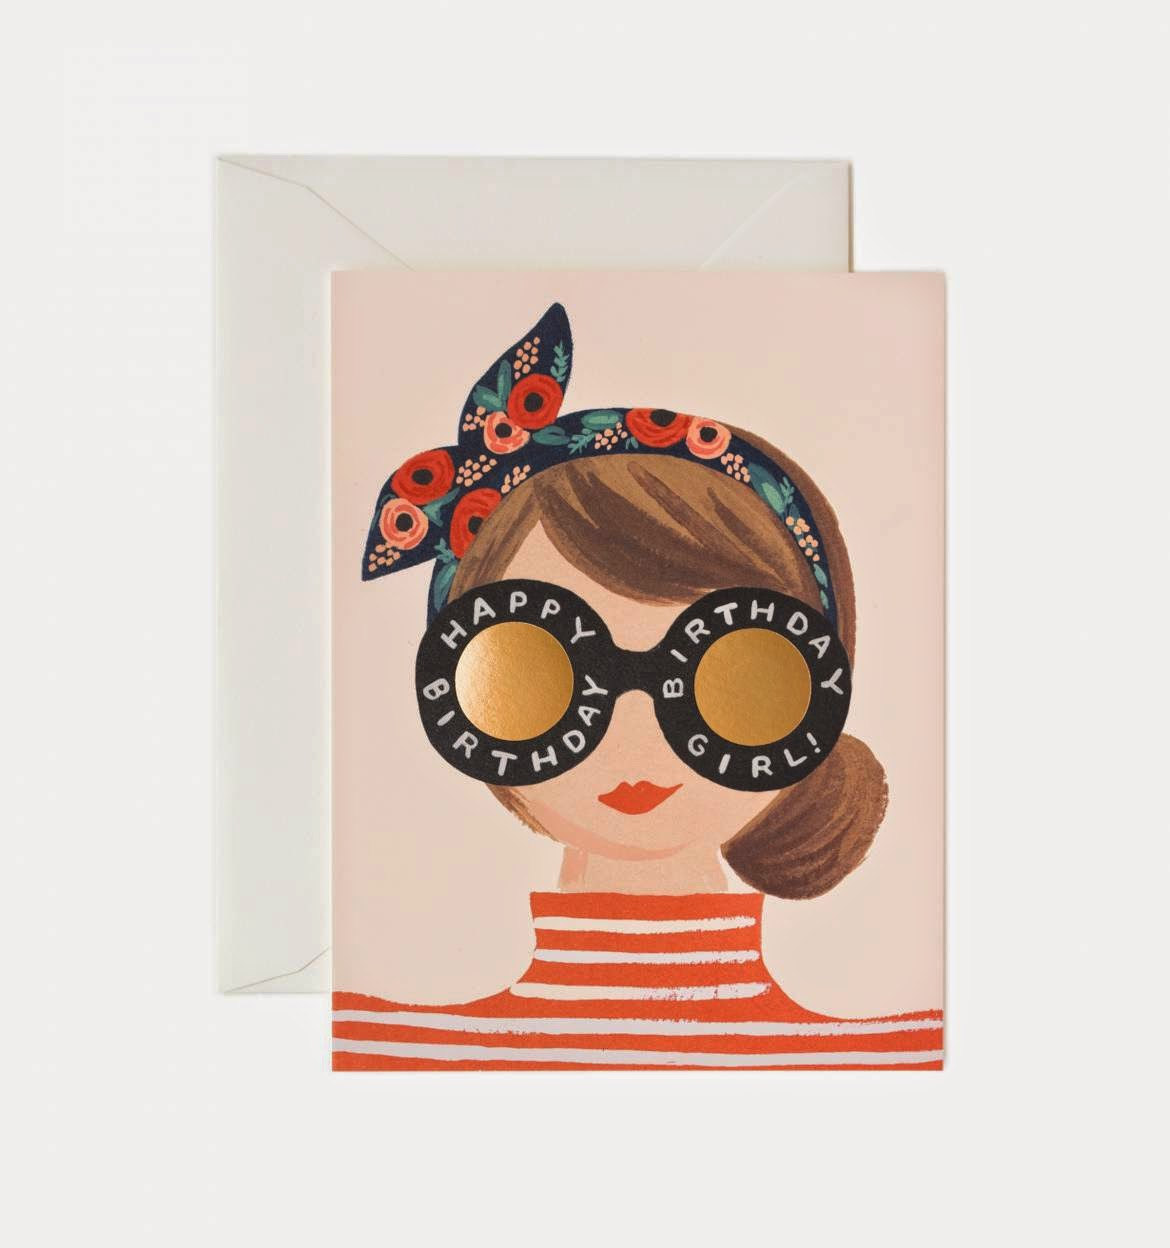 https://riflepaperco.com/shop/birthday-girl-birthday-greeting-card/